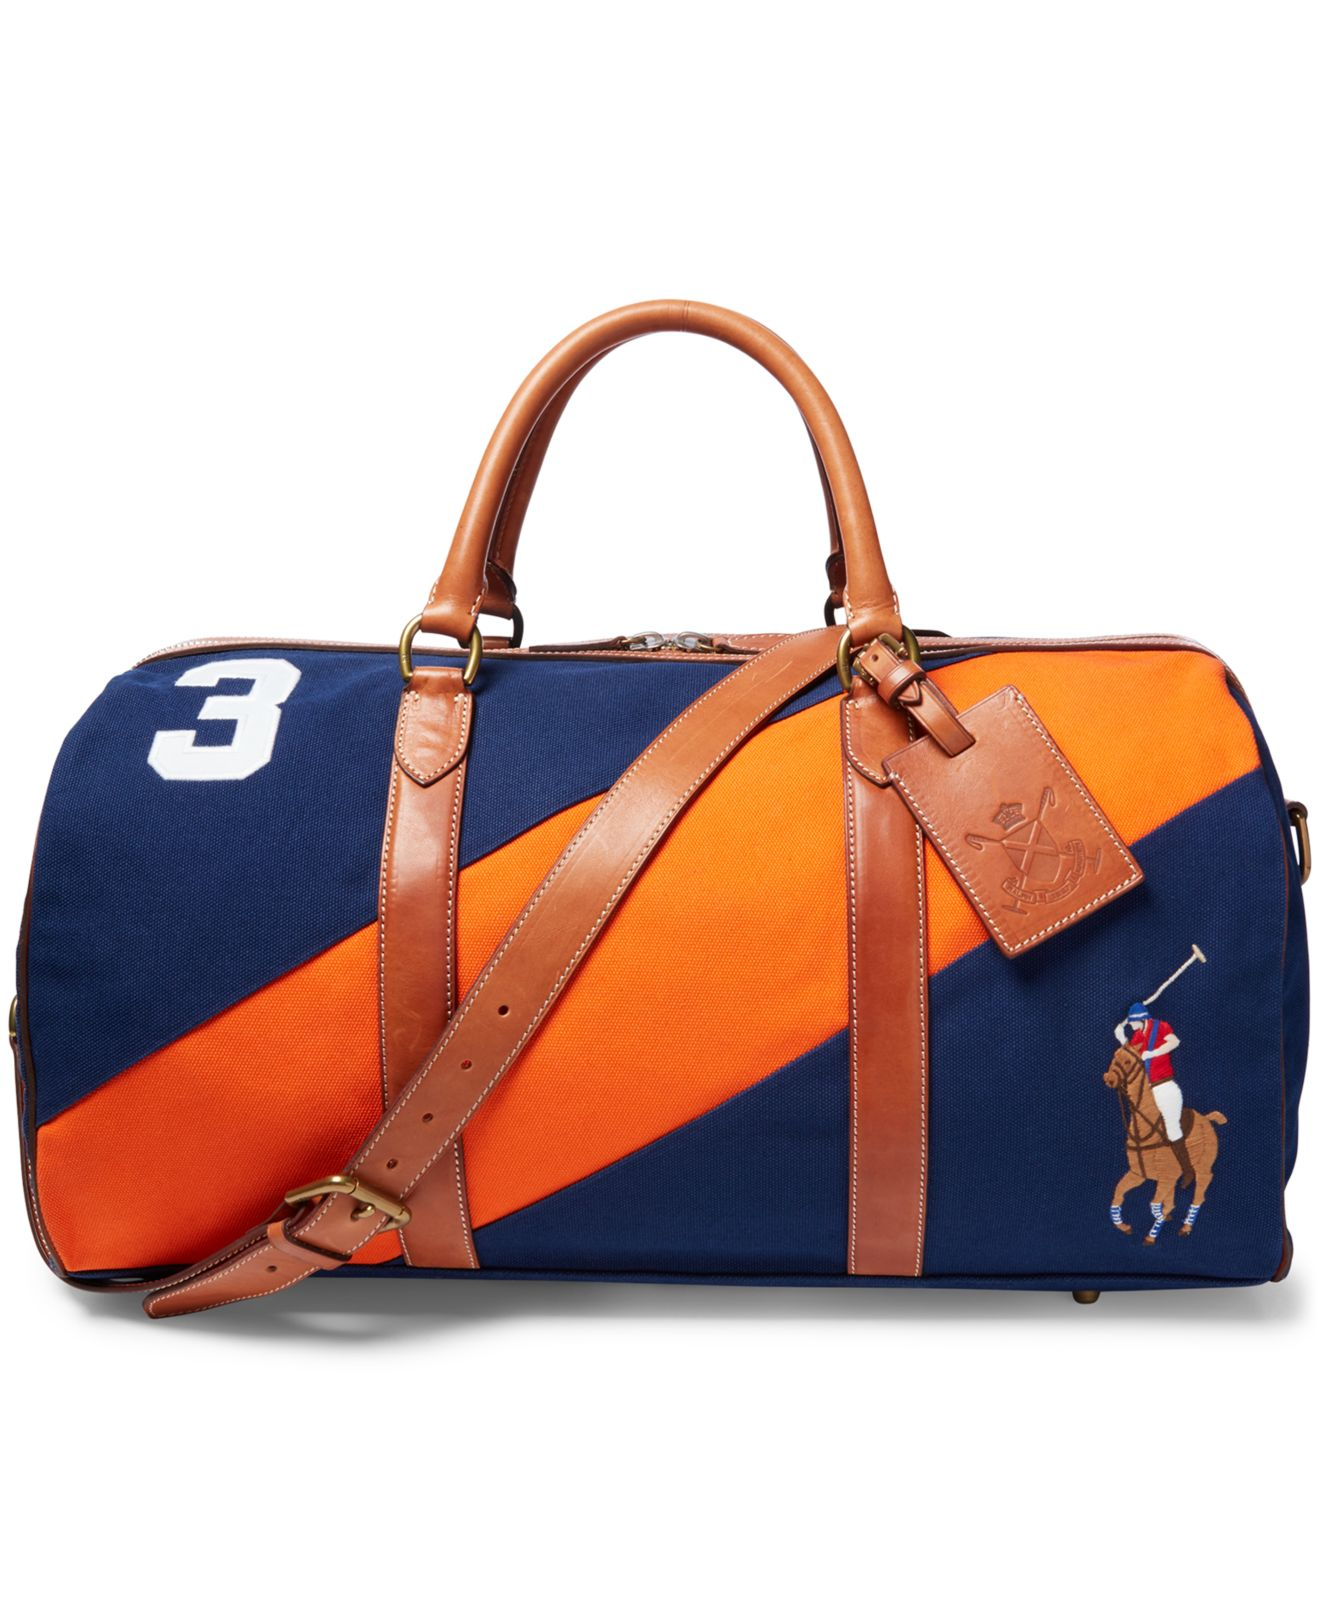 Polo ralph lauren navy orange canvas black watch leather detail duffel bag  blue product normal jpg 995f3361c9646